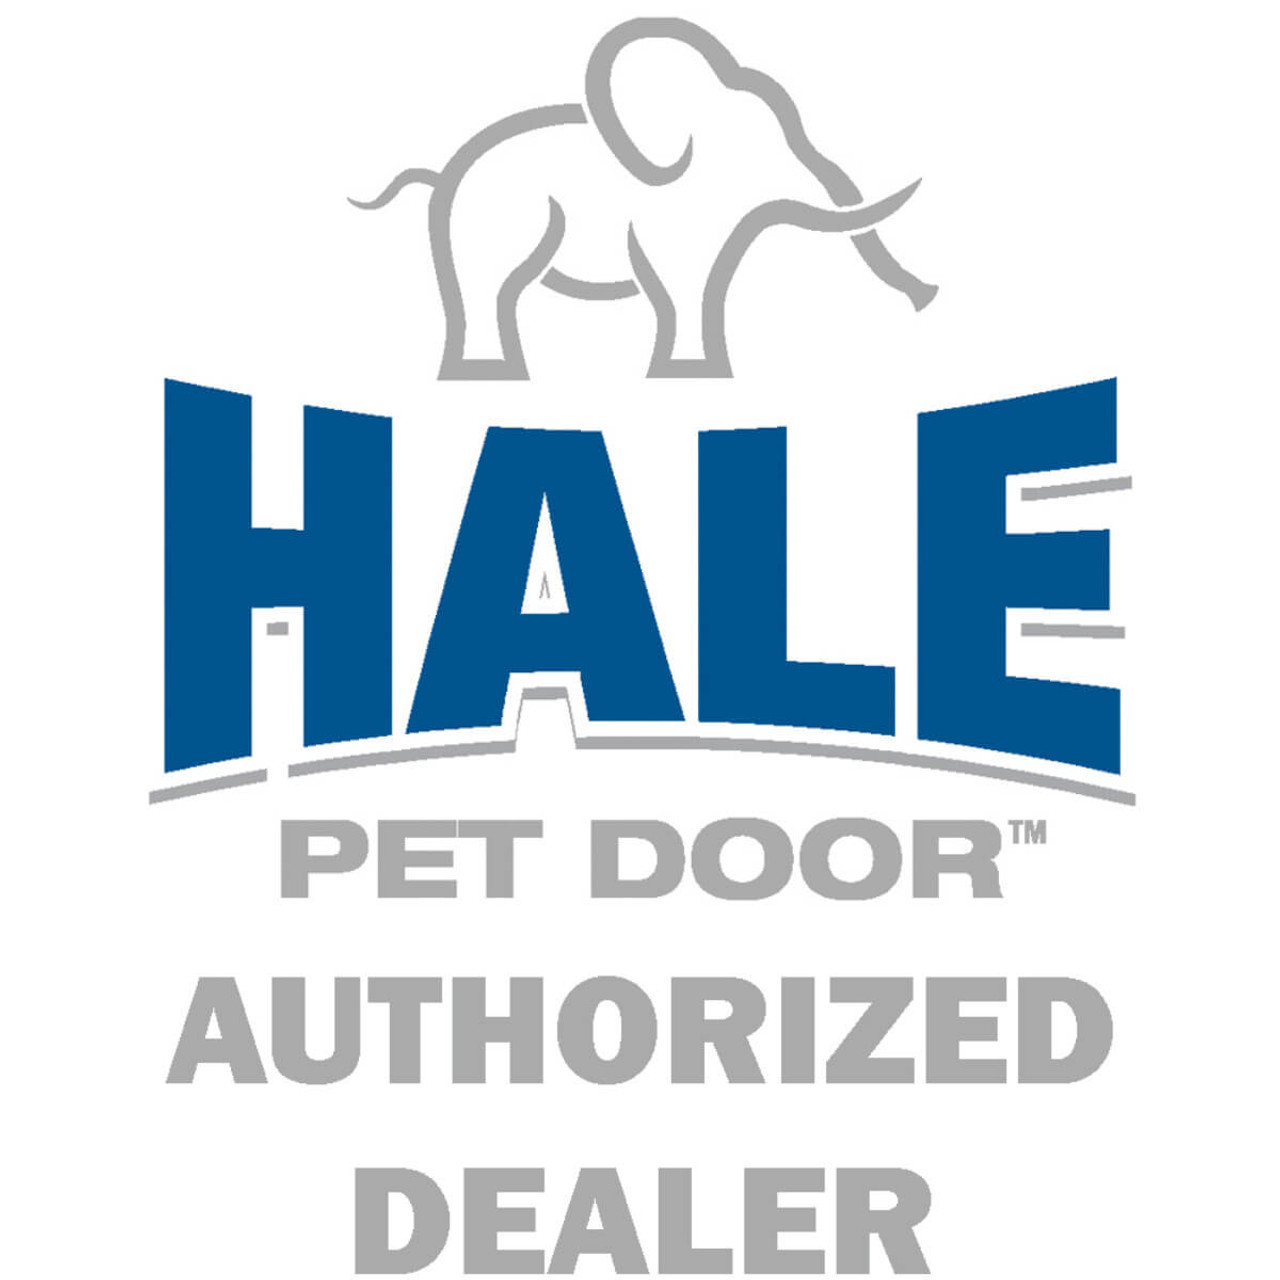 Hale Optiview doggy door for windows are high quality weather tight pet doors made in the USA